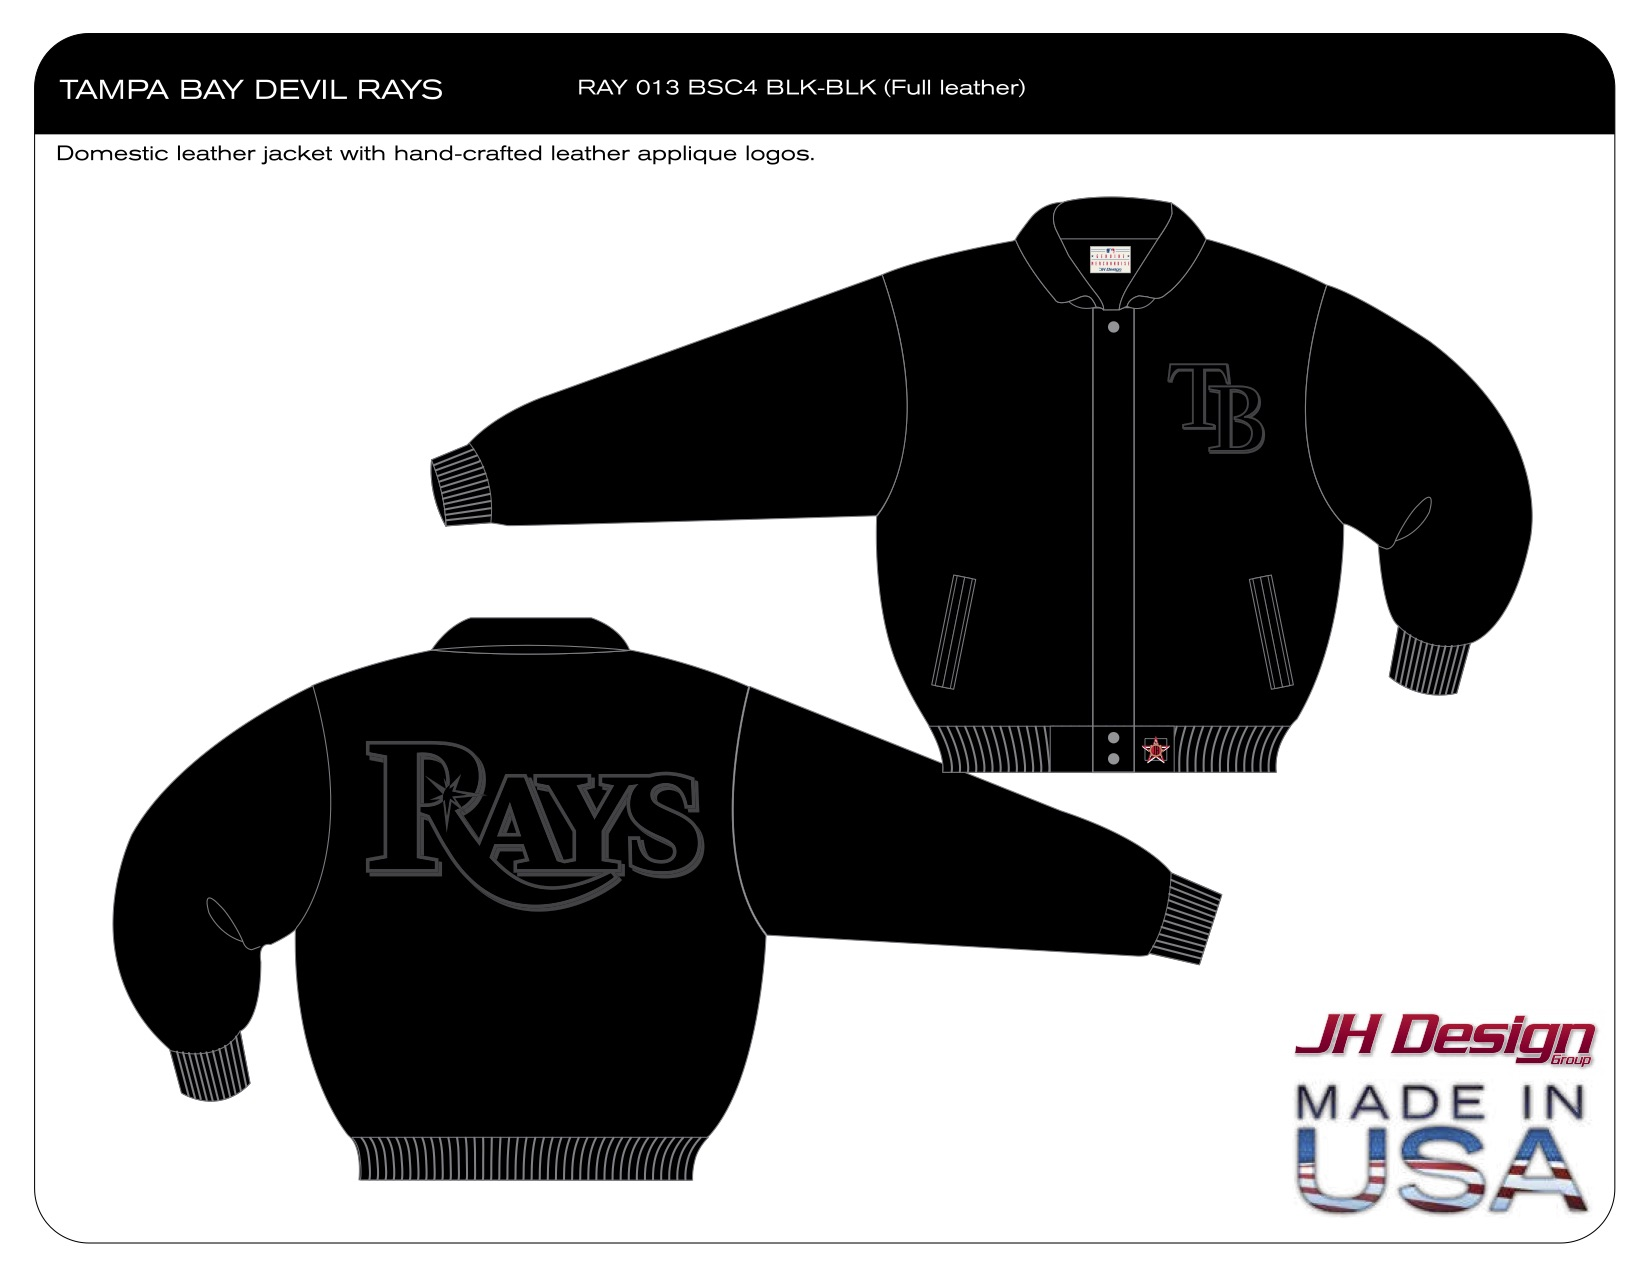 RAY 013 BSC4 BLK-BLK